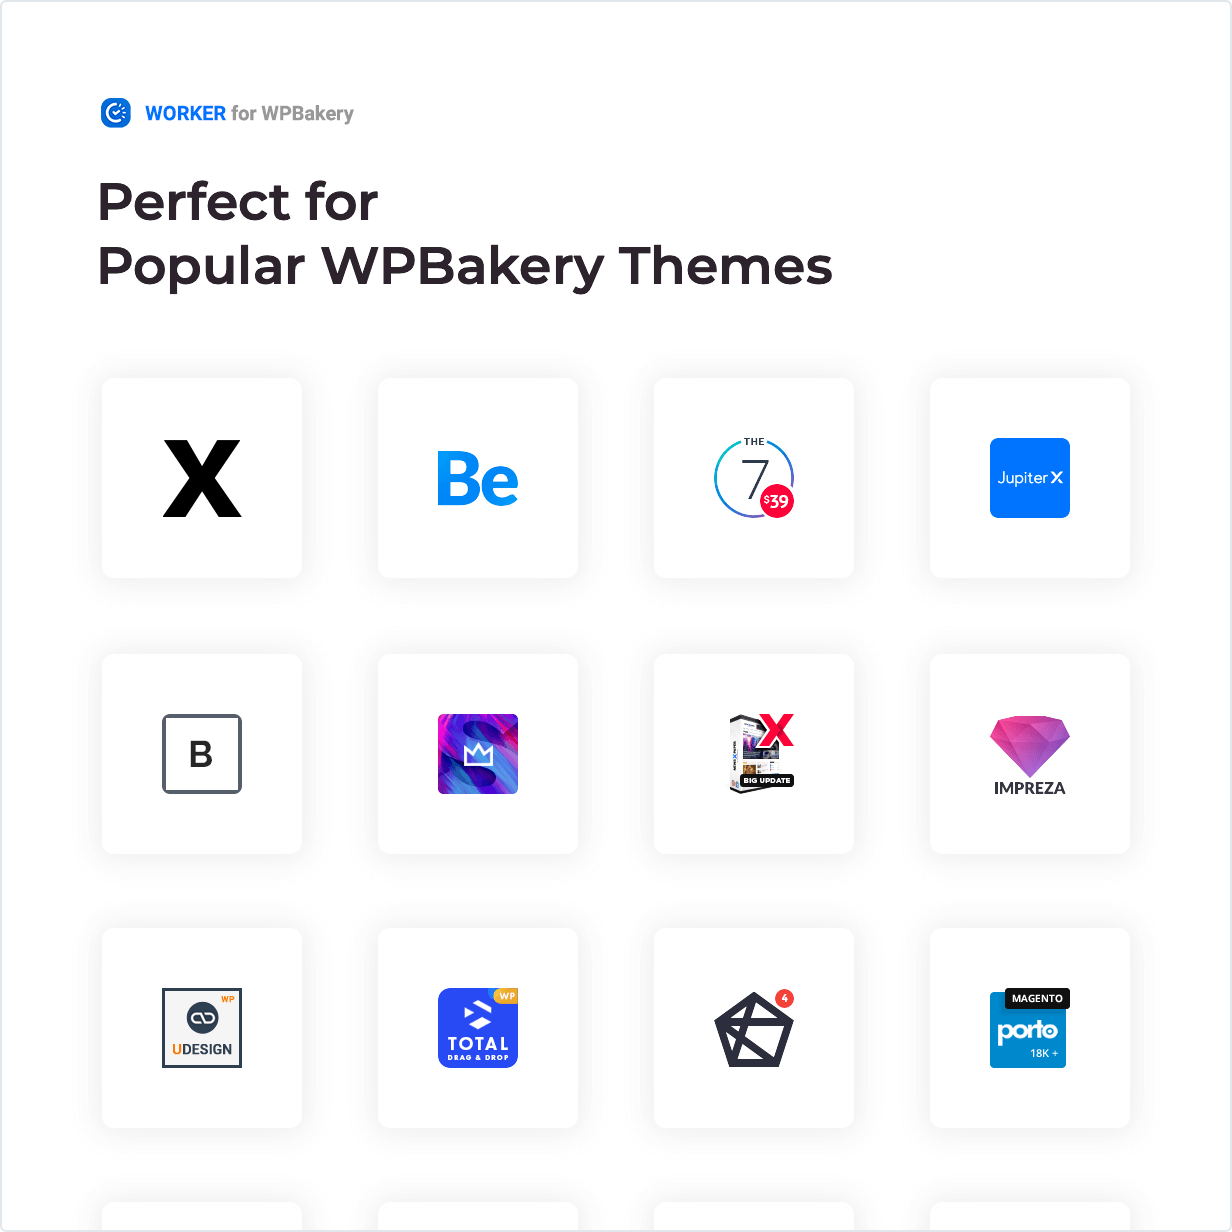 Worker widget - Perfect for Popular WPBakery Themes